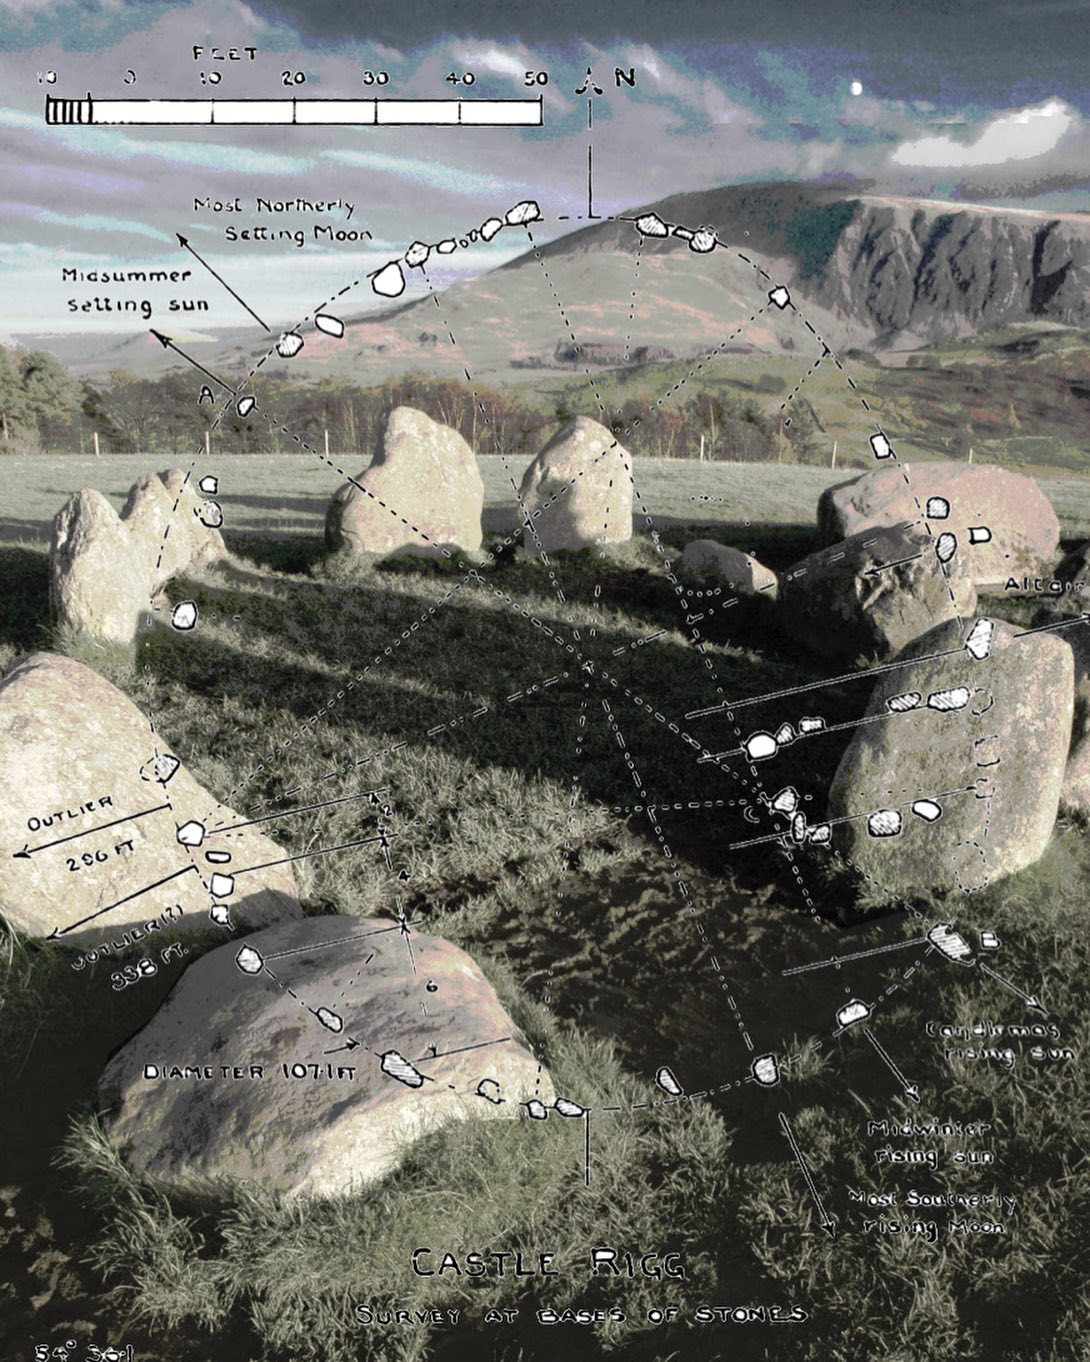 castlerigg stone cove. castlerigg stone circle. rectilinear stone cove with celestial orientations. explored in the overlay drawing by alexander thom. the circle is thought to be connected with the production and distribution of axe heads. axe heads were highly prized and were imbued with symbolic significance. these sites connected these two aspects of the neolithic the heavens and its celestial bodies and the transformative power of axes, both important in the establishment of the new agrarian culture. #castlerigg #castleriggstonecircle #cove #stonecove #celestial #celestialbodies #alignment #neolithic #axetrade #axeheads #alexanderthom #megaliths #megalithicsites #originsofagriculture #agriculture #heavensandearth see montagecity.com